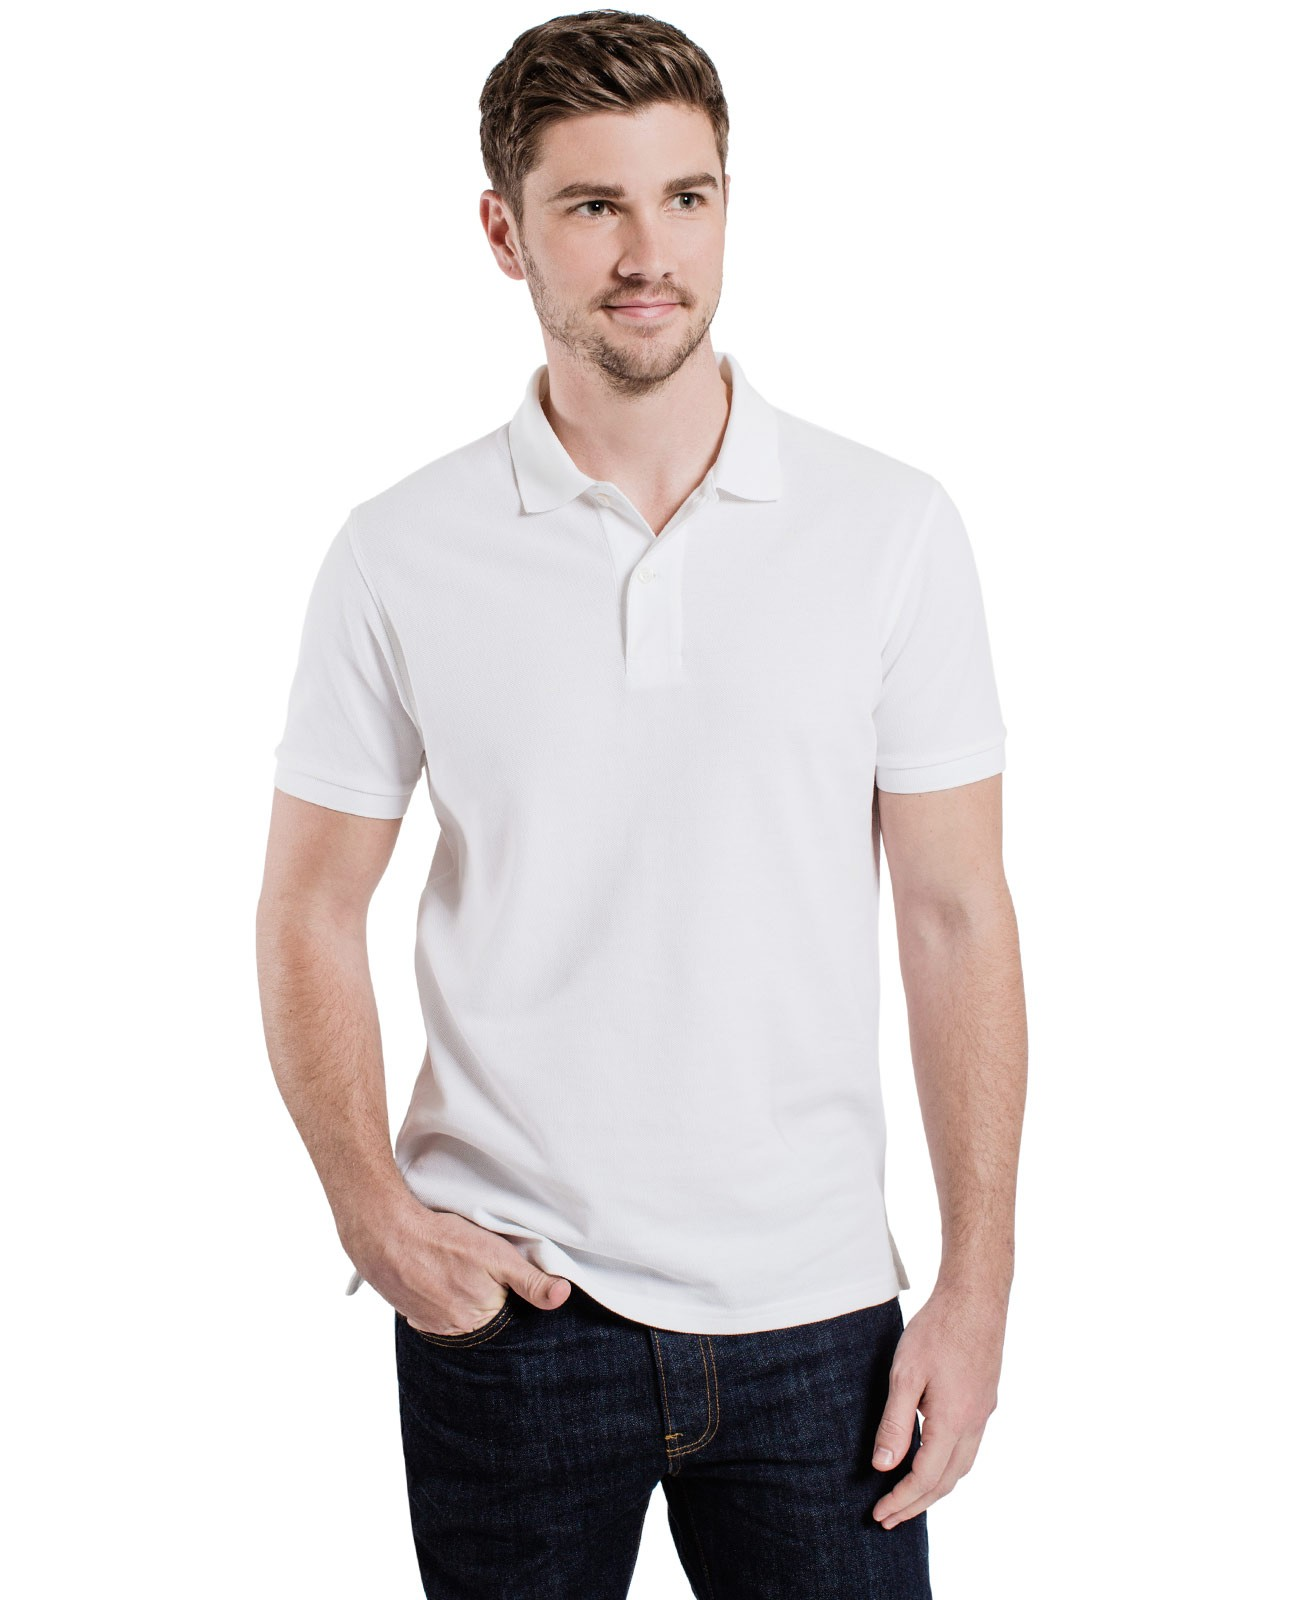 The original polo shirt was designed by French tennis pro René Lacoste in the s, as an upgrade on the long-sleeved button-downs that contemporary tastes somehow thought appropriate for .